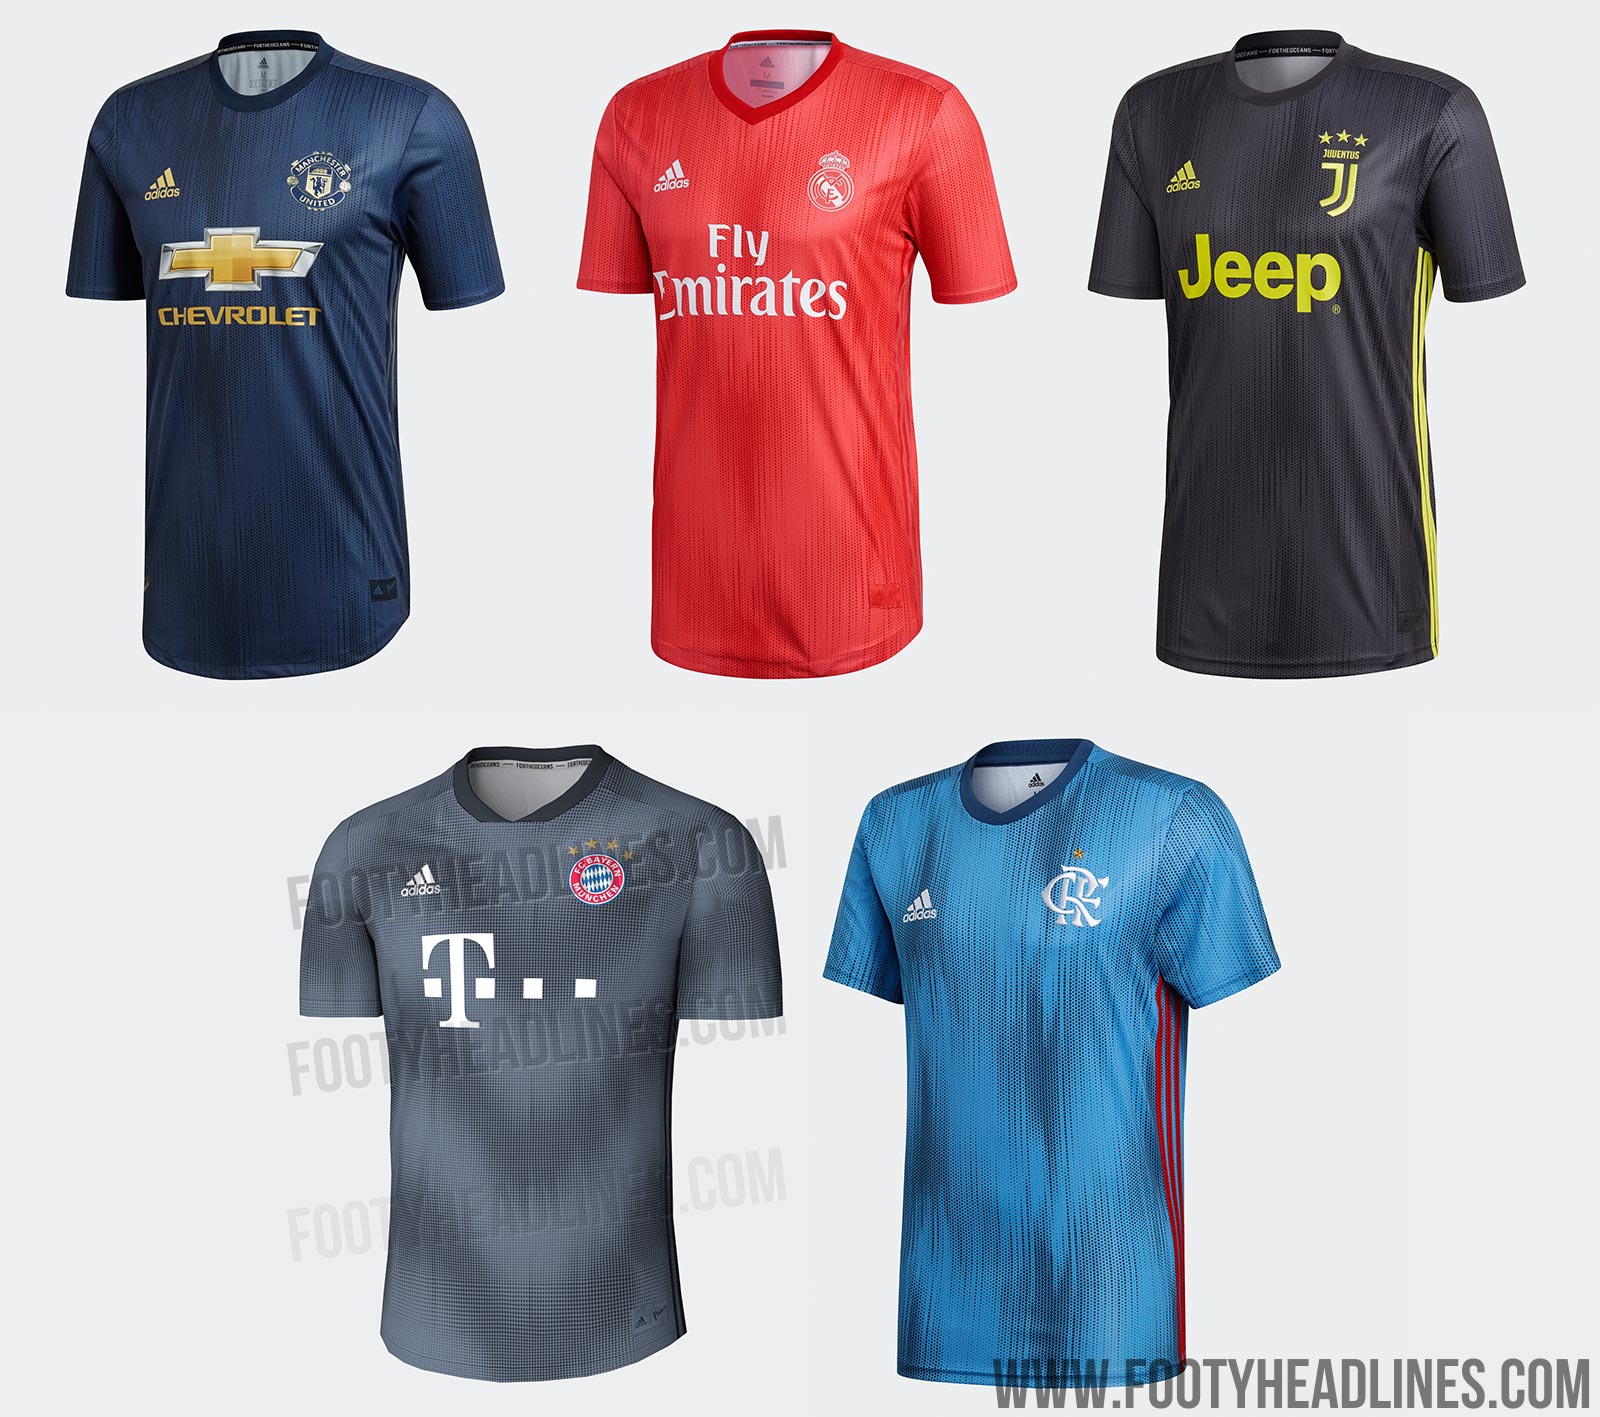 Contrary to the 2019-20 third kits of Bayern Munich 28c175d5d4593